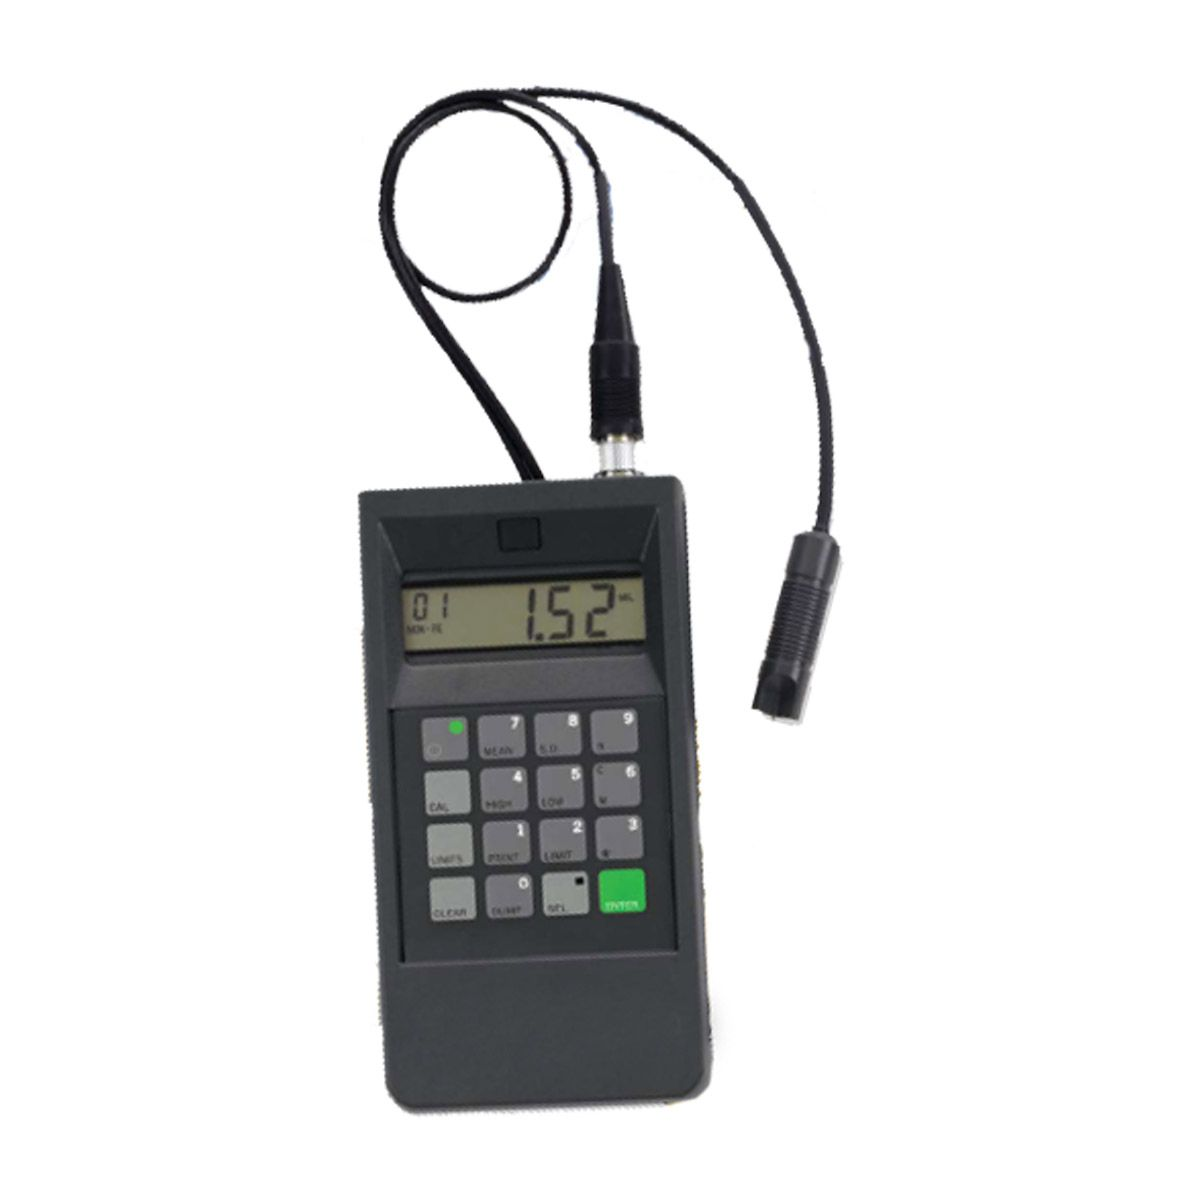 CMI 233 : Material Coating Thickness Gauge